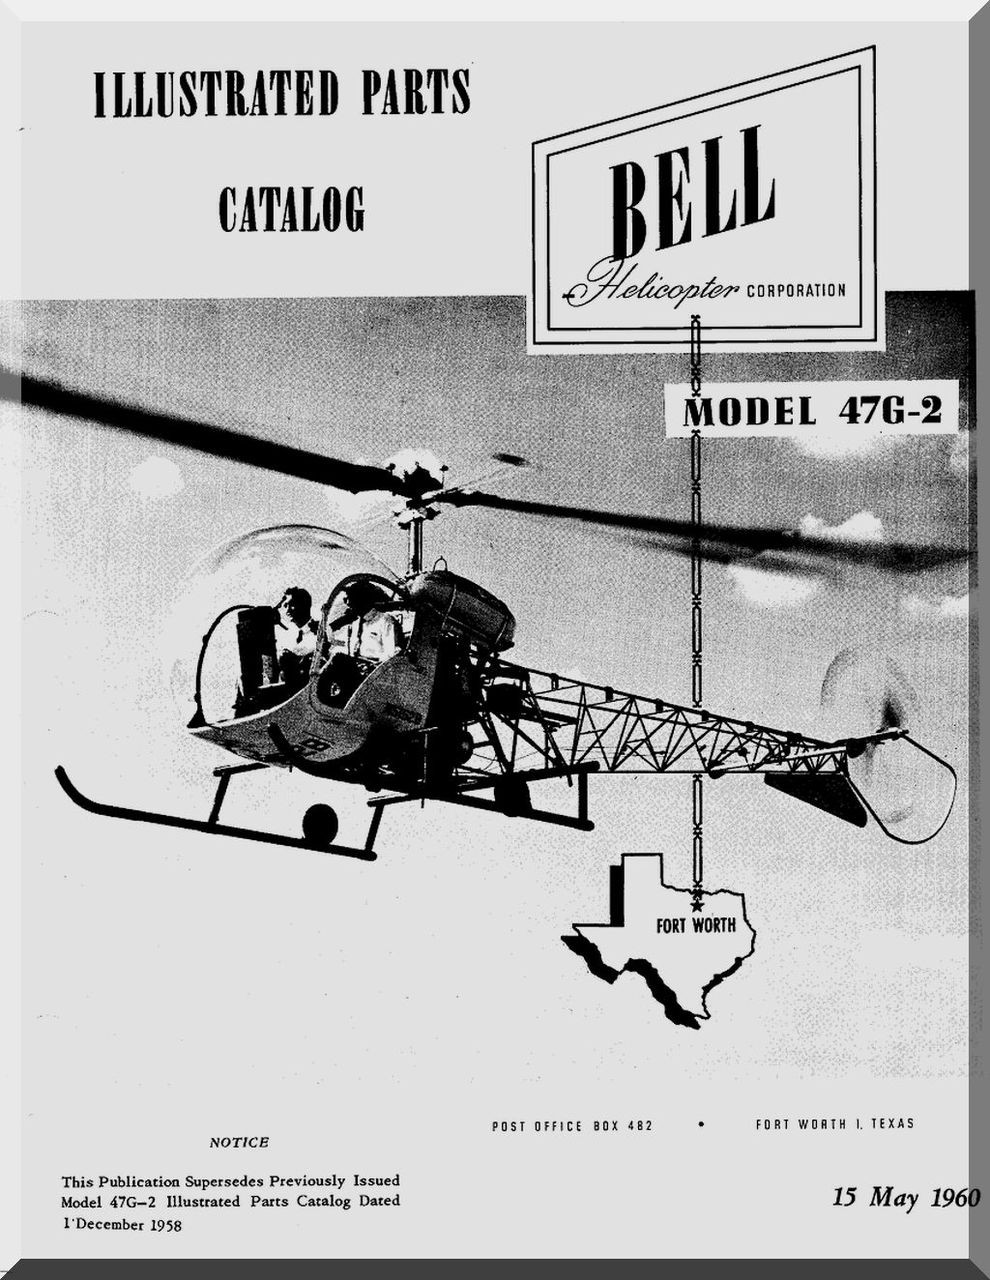 bell helicopter 47 g 2 illustrated parts catalog manual 1960 rh aircraft reports com Agusta Aerospace Agusta Aerospace Corp